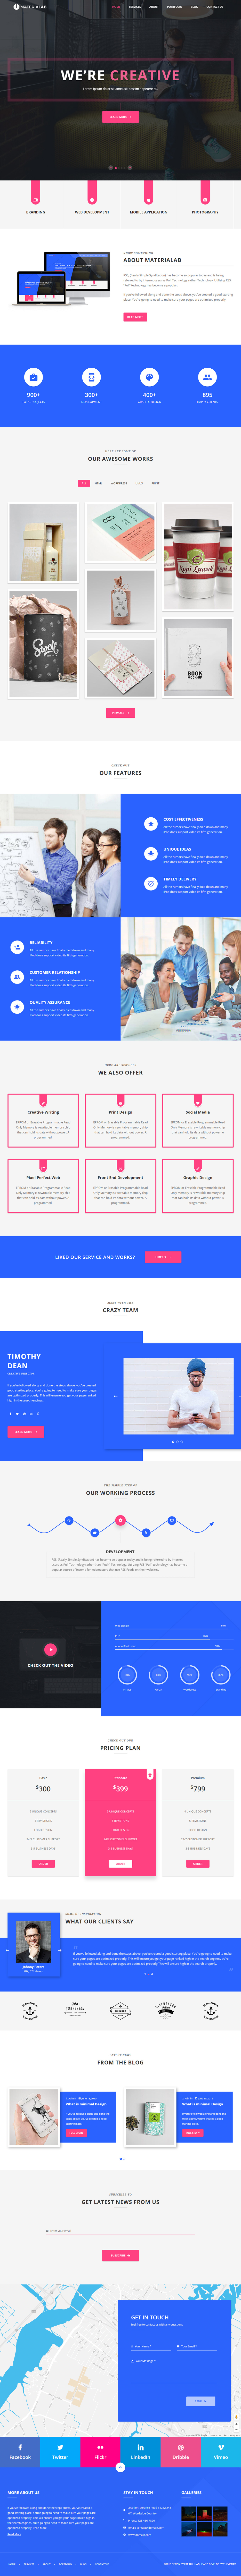 15 Best Materialize CSS Templates 2017 - Responsive Miracle